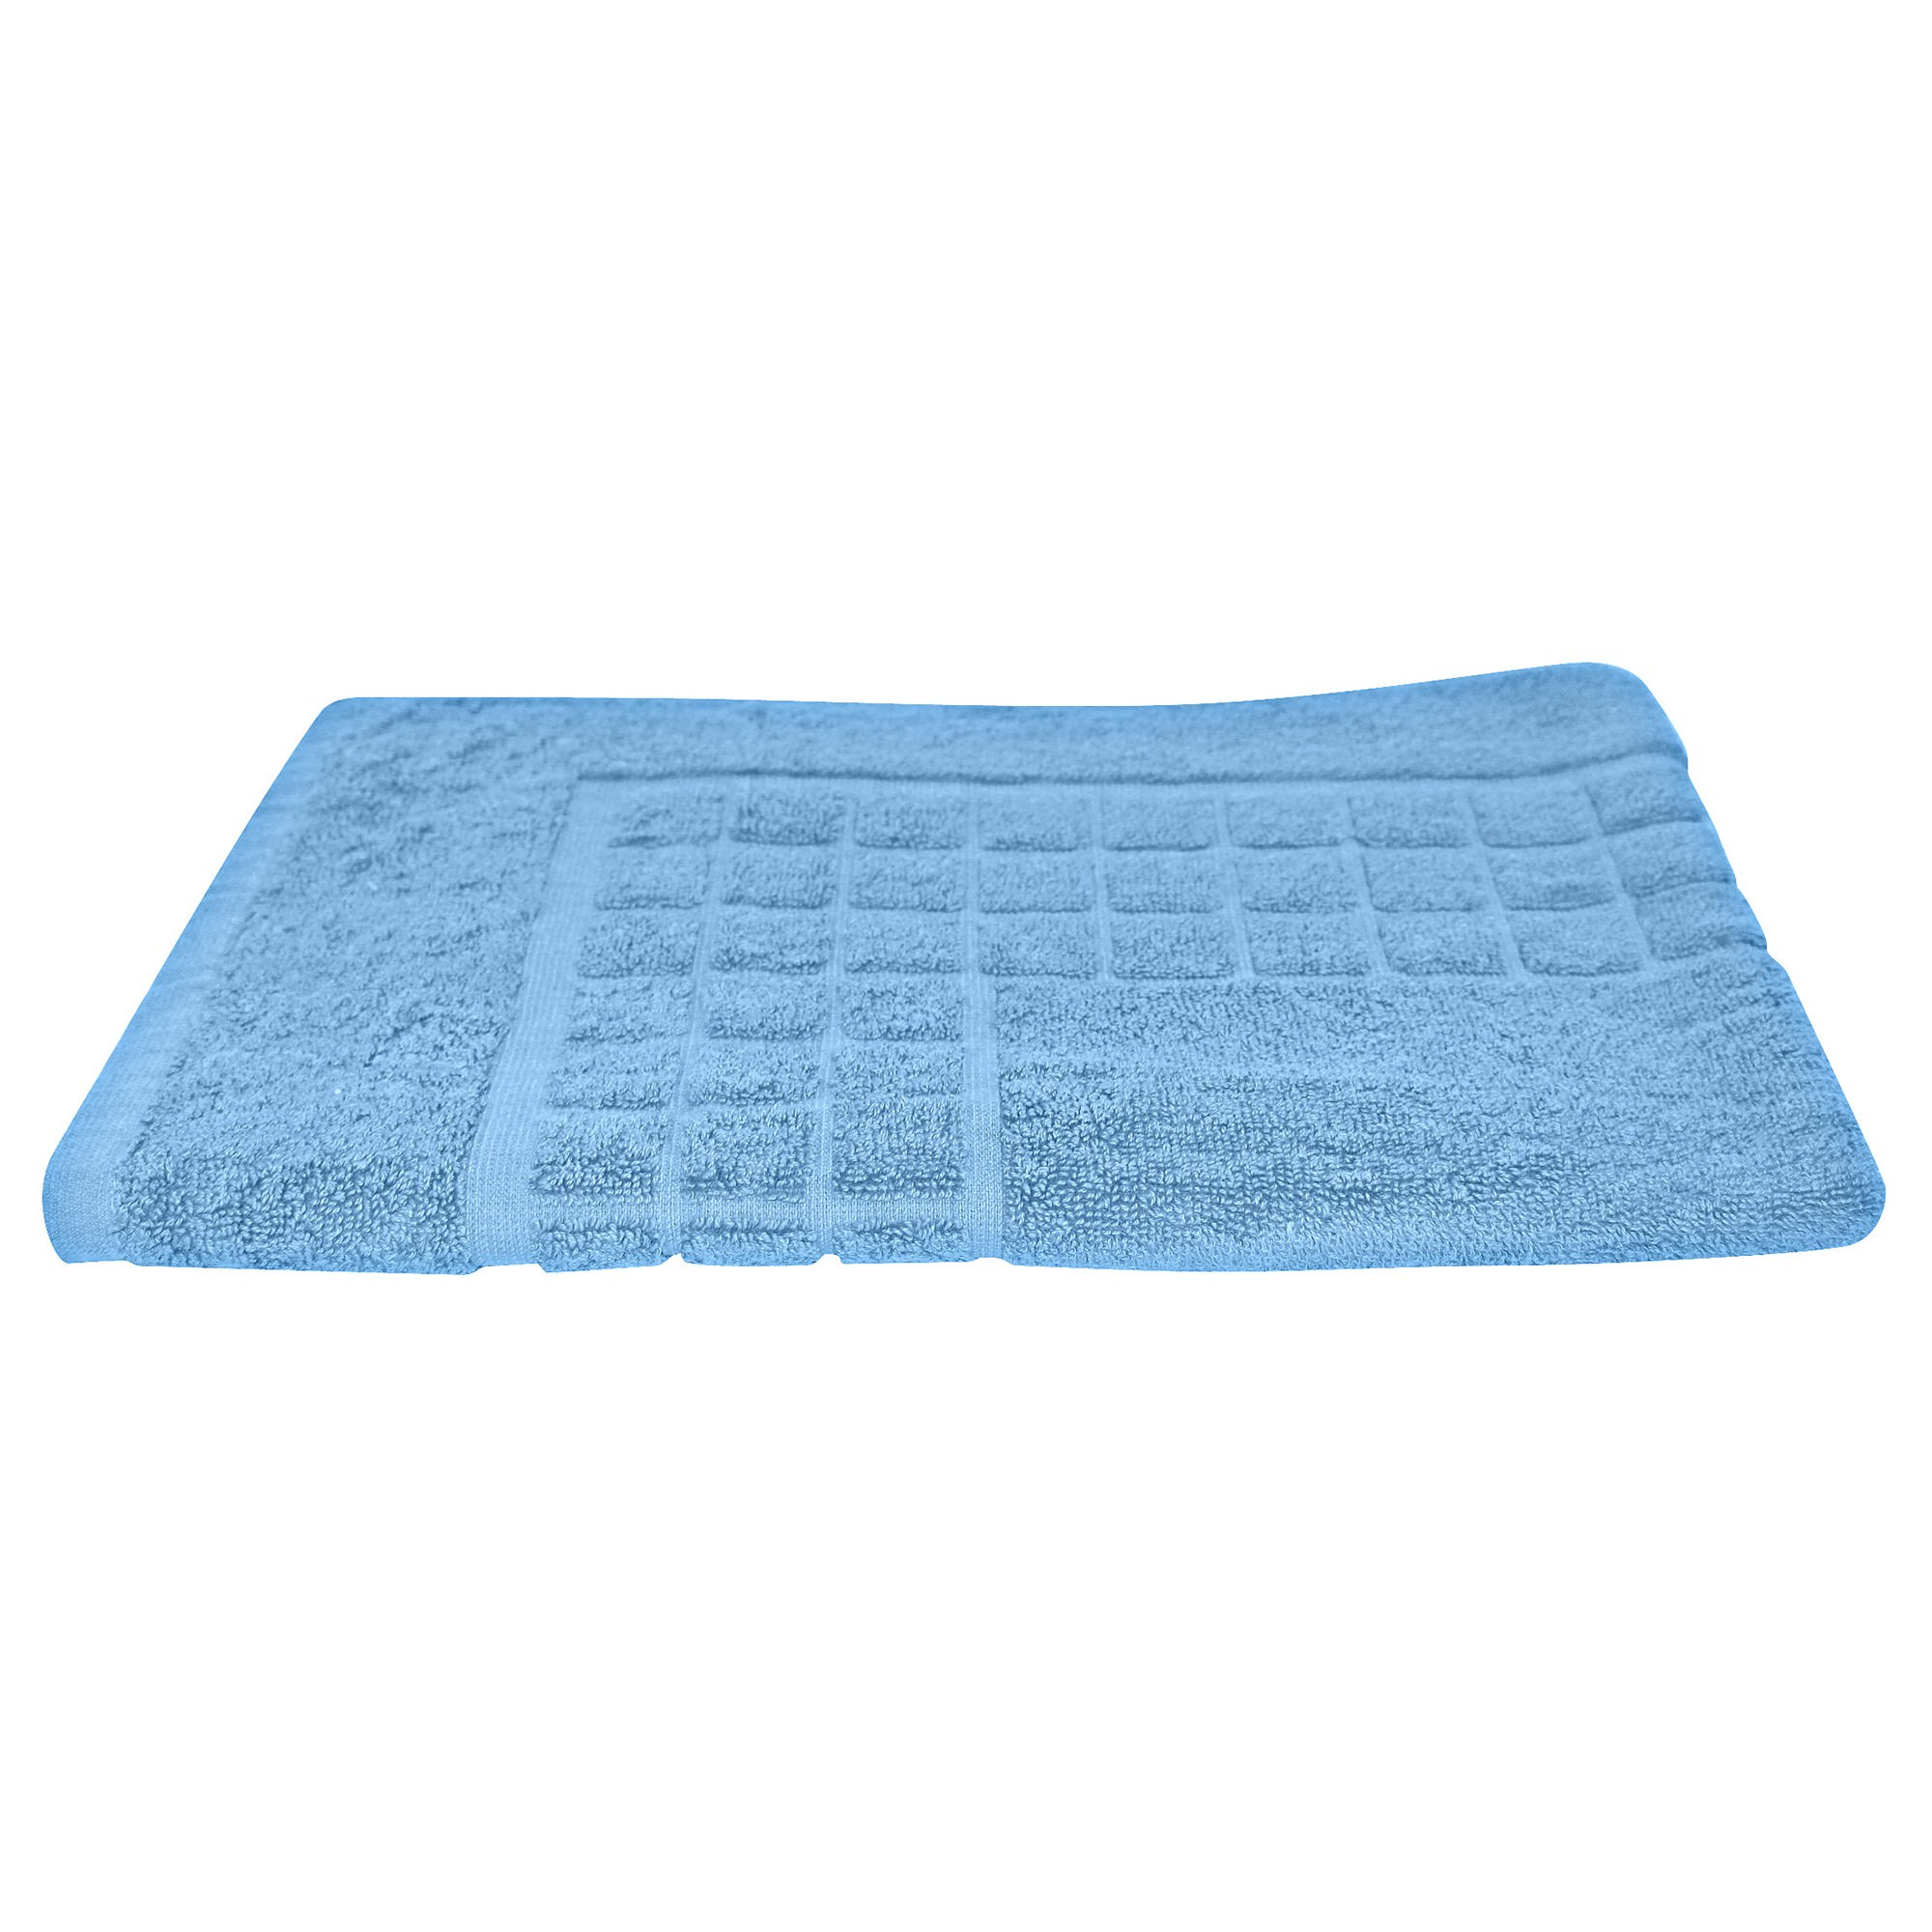 Odyssey Living Meridian Cotton Bath Mat, Bluejay